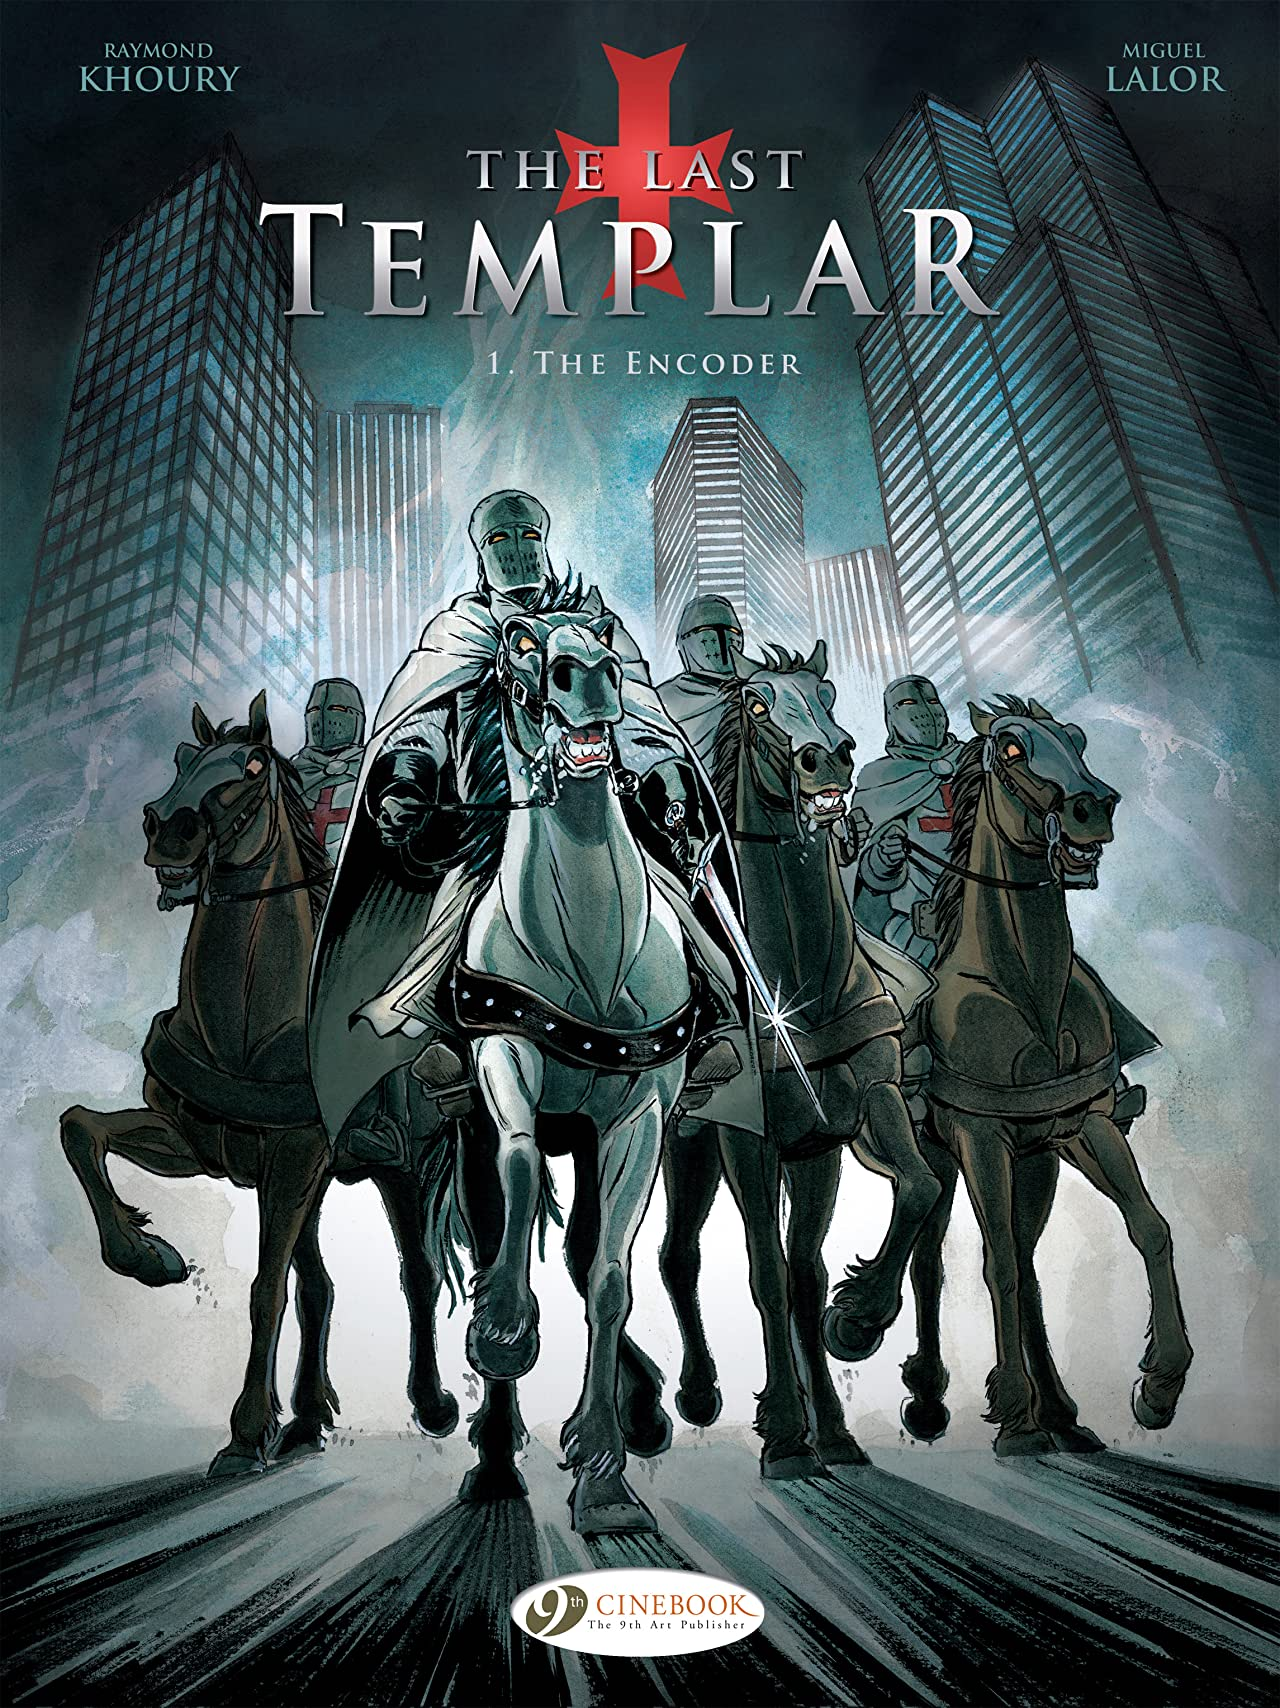 The Last Templar Vol. 1: The Encoder